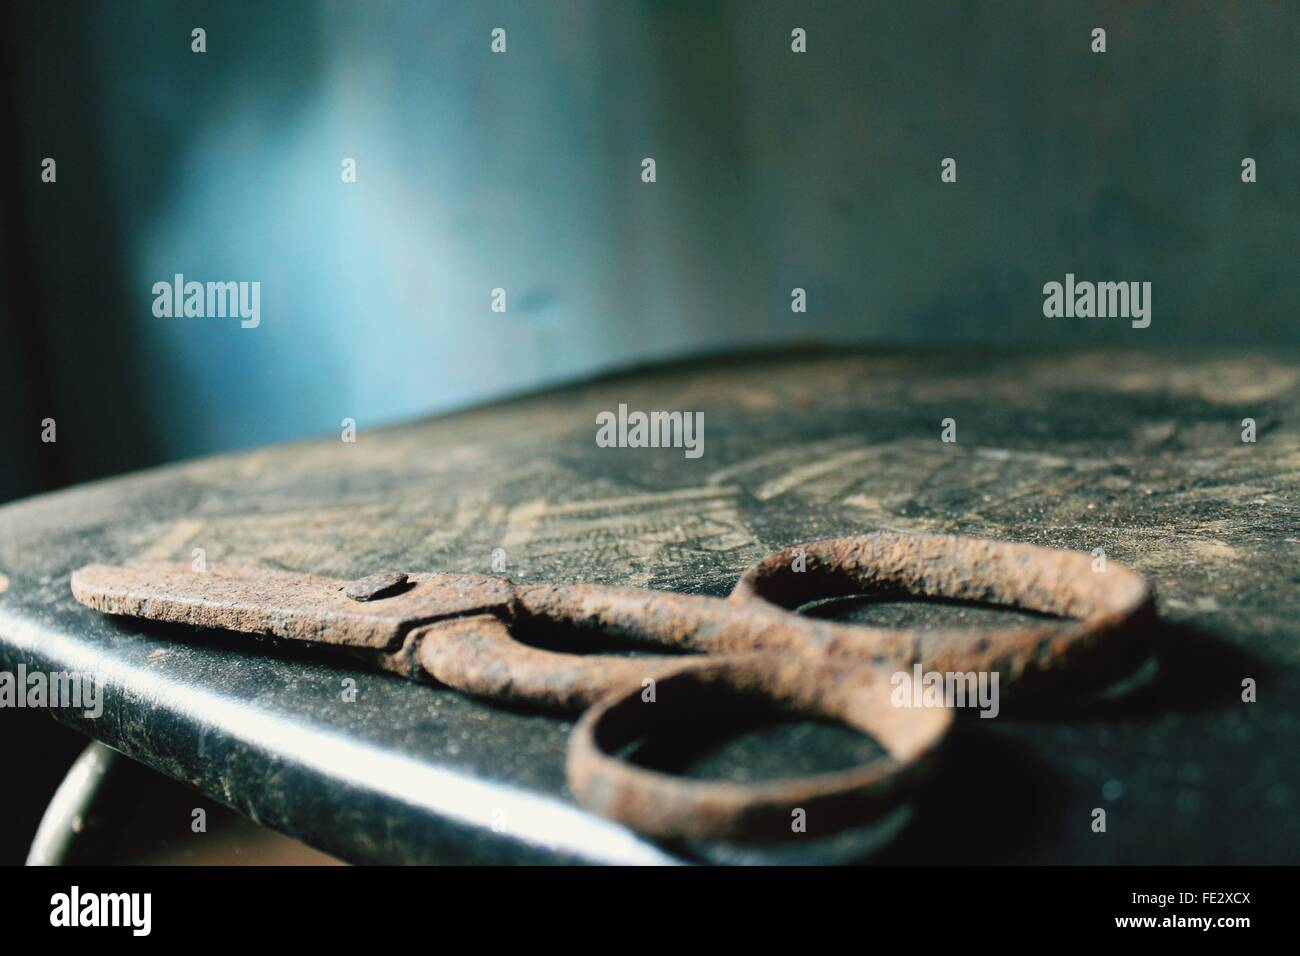 View Of Rusty Scissors - Stock Image